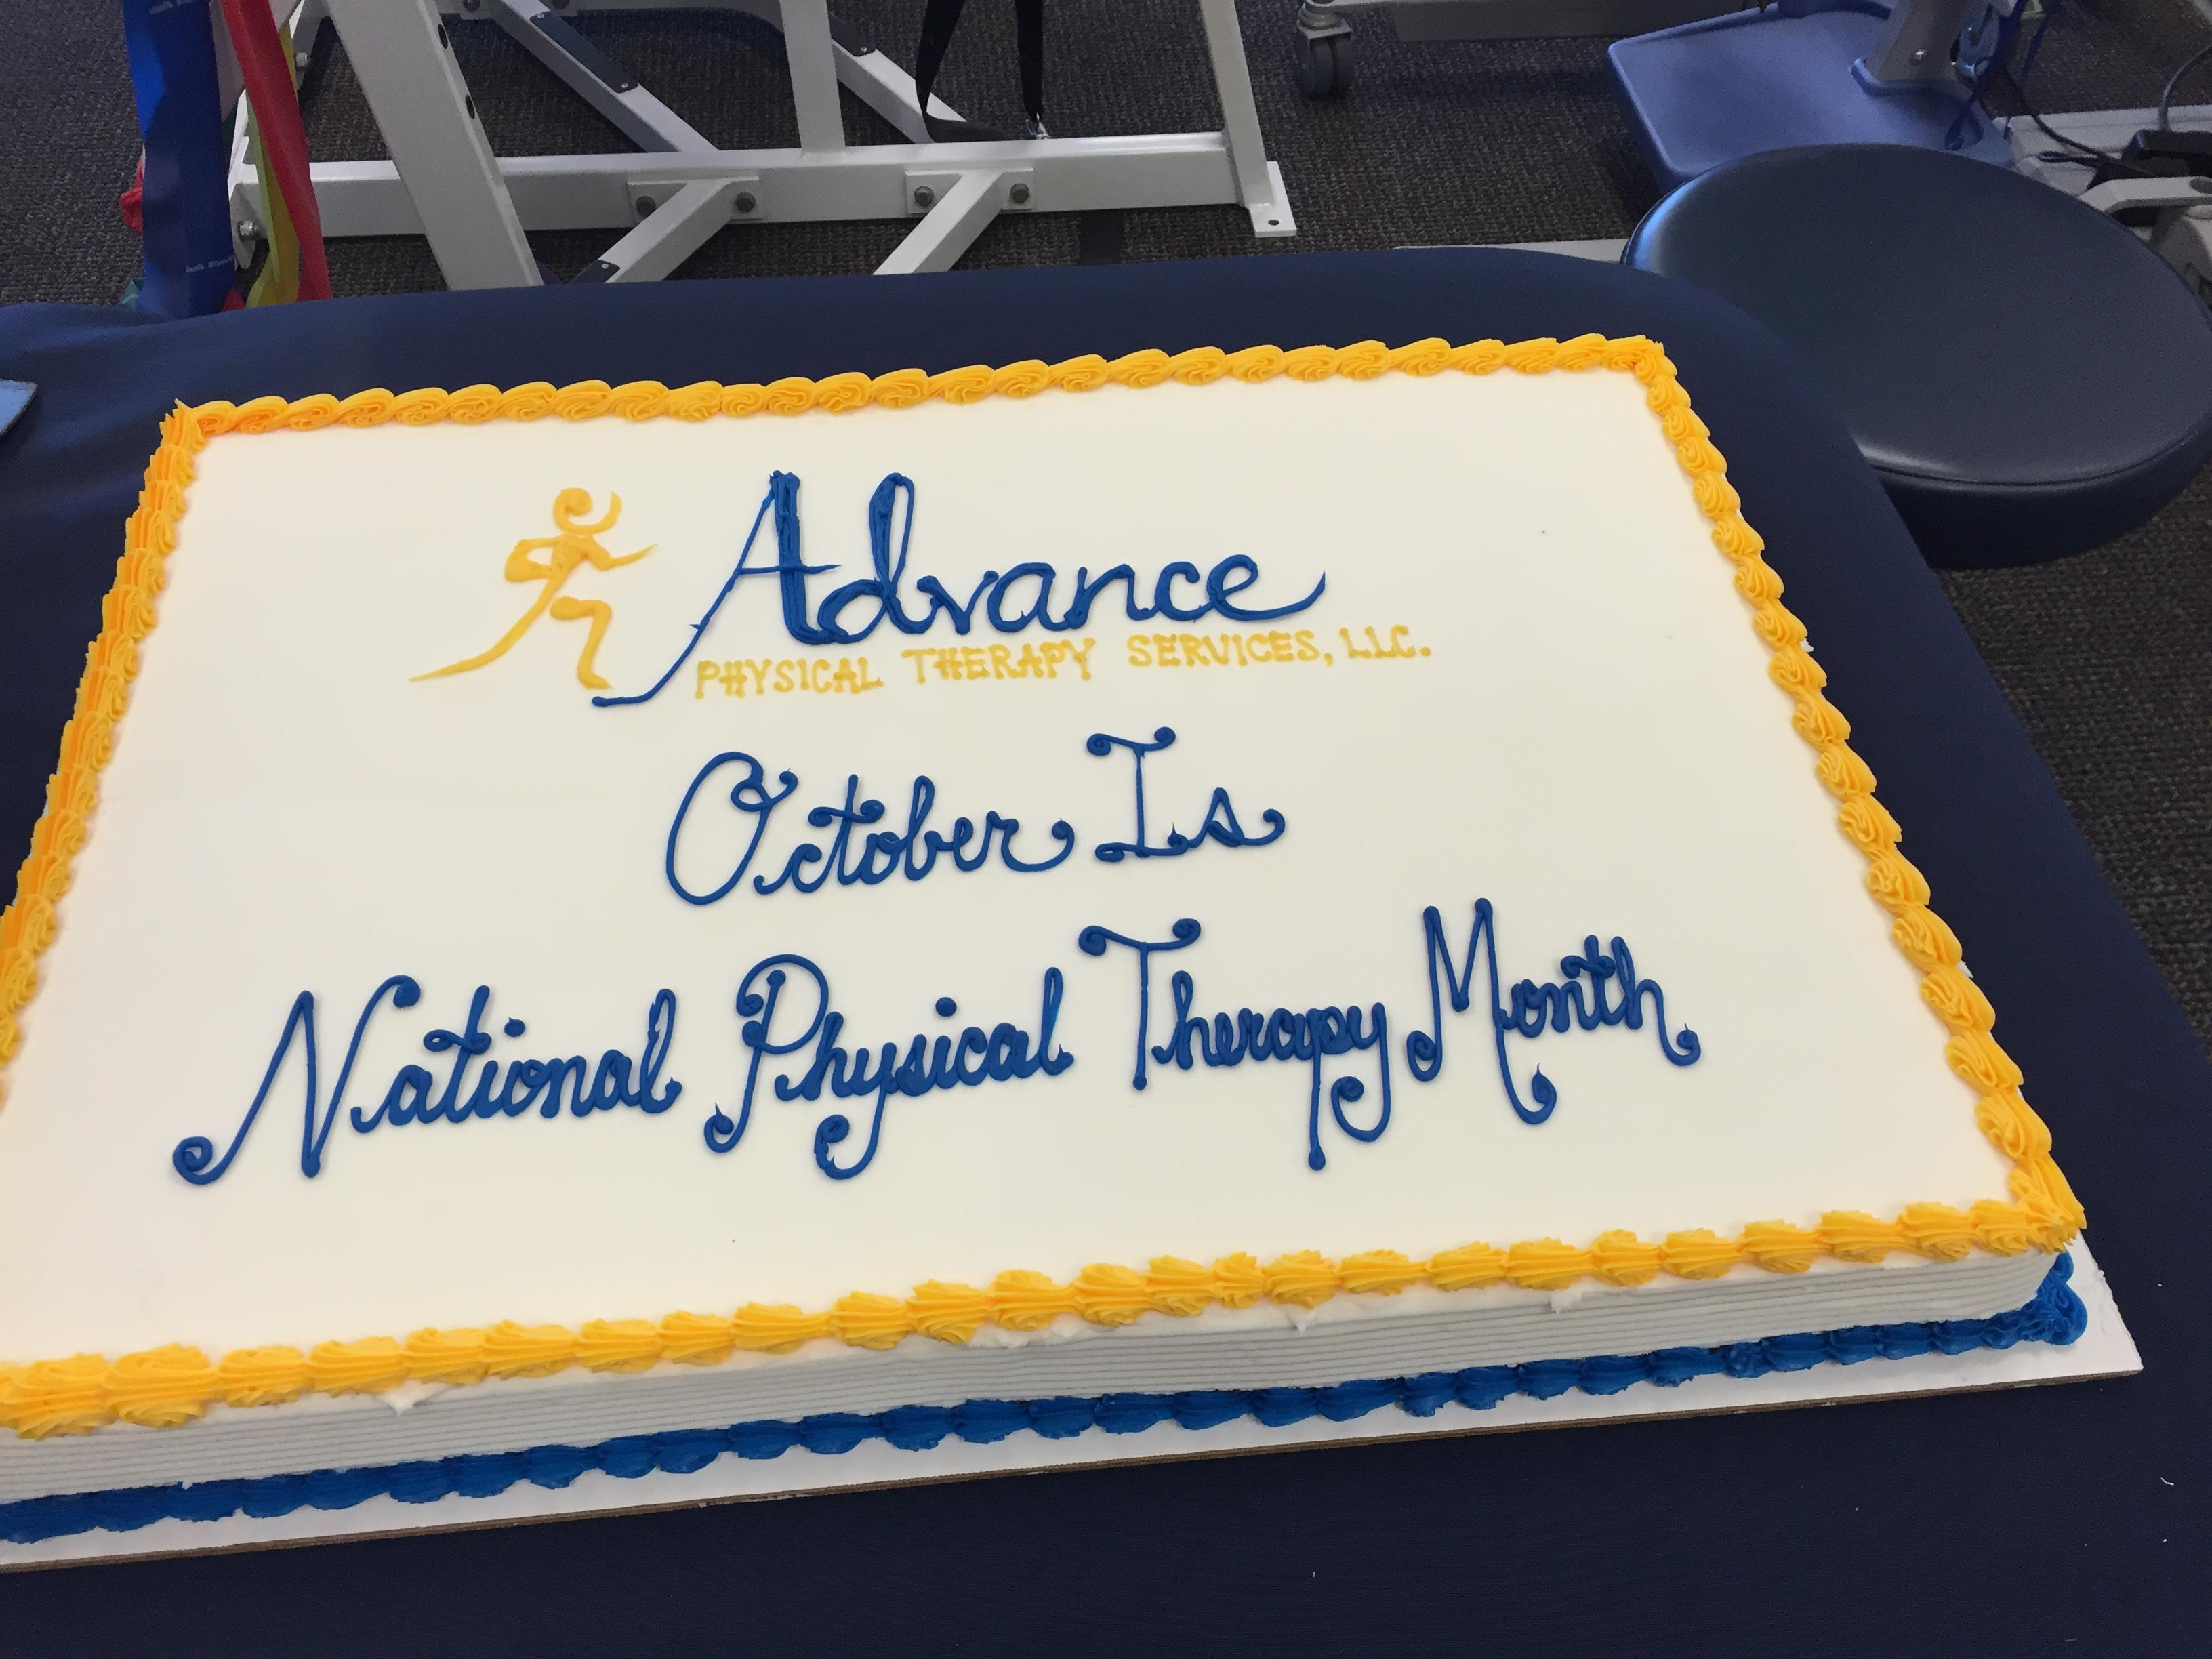 Advance physical therapy - Advance Physical Therapy Services